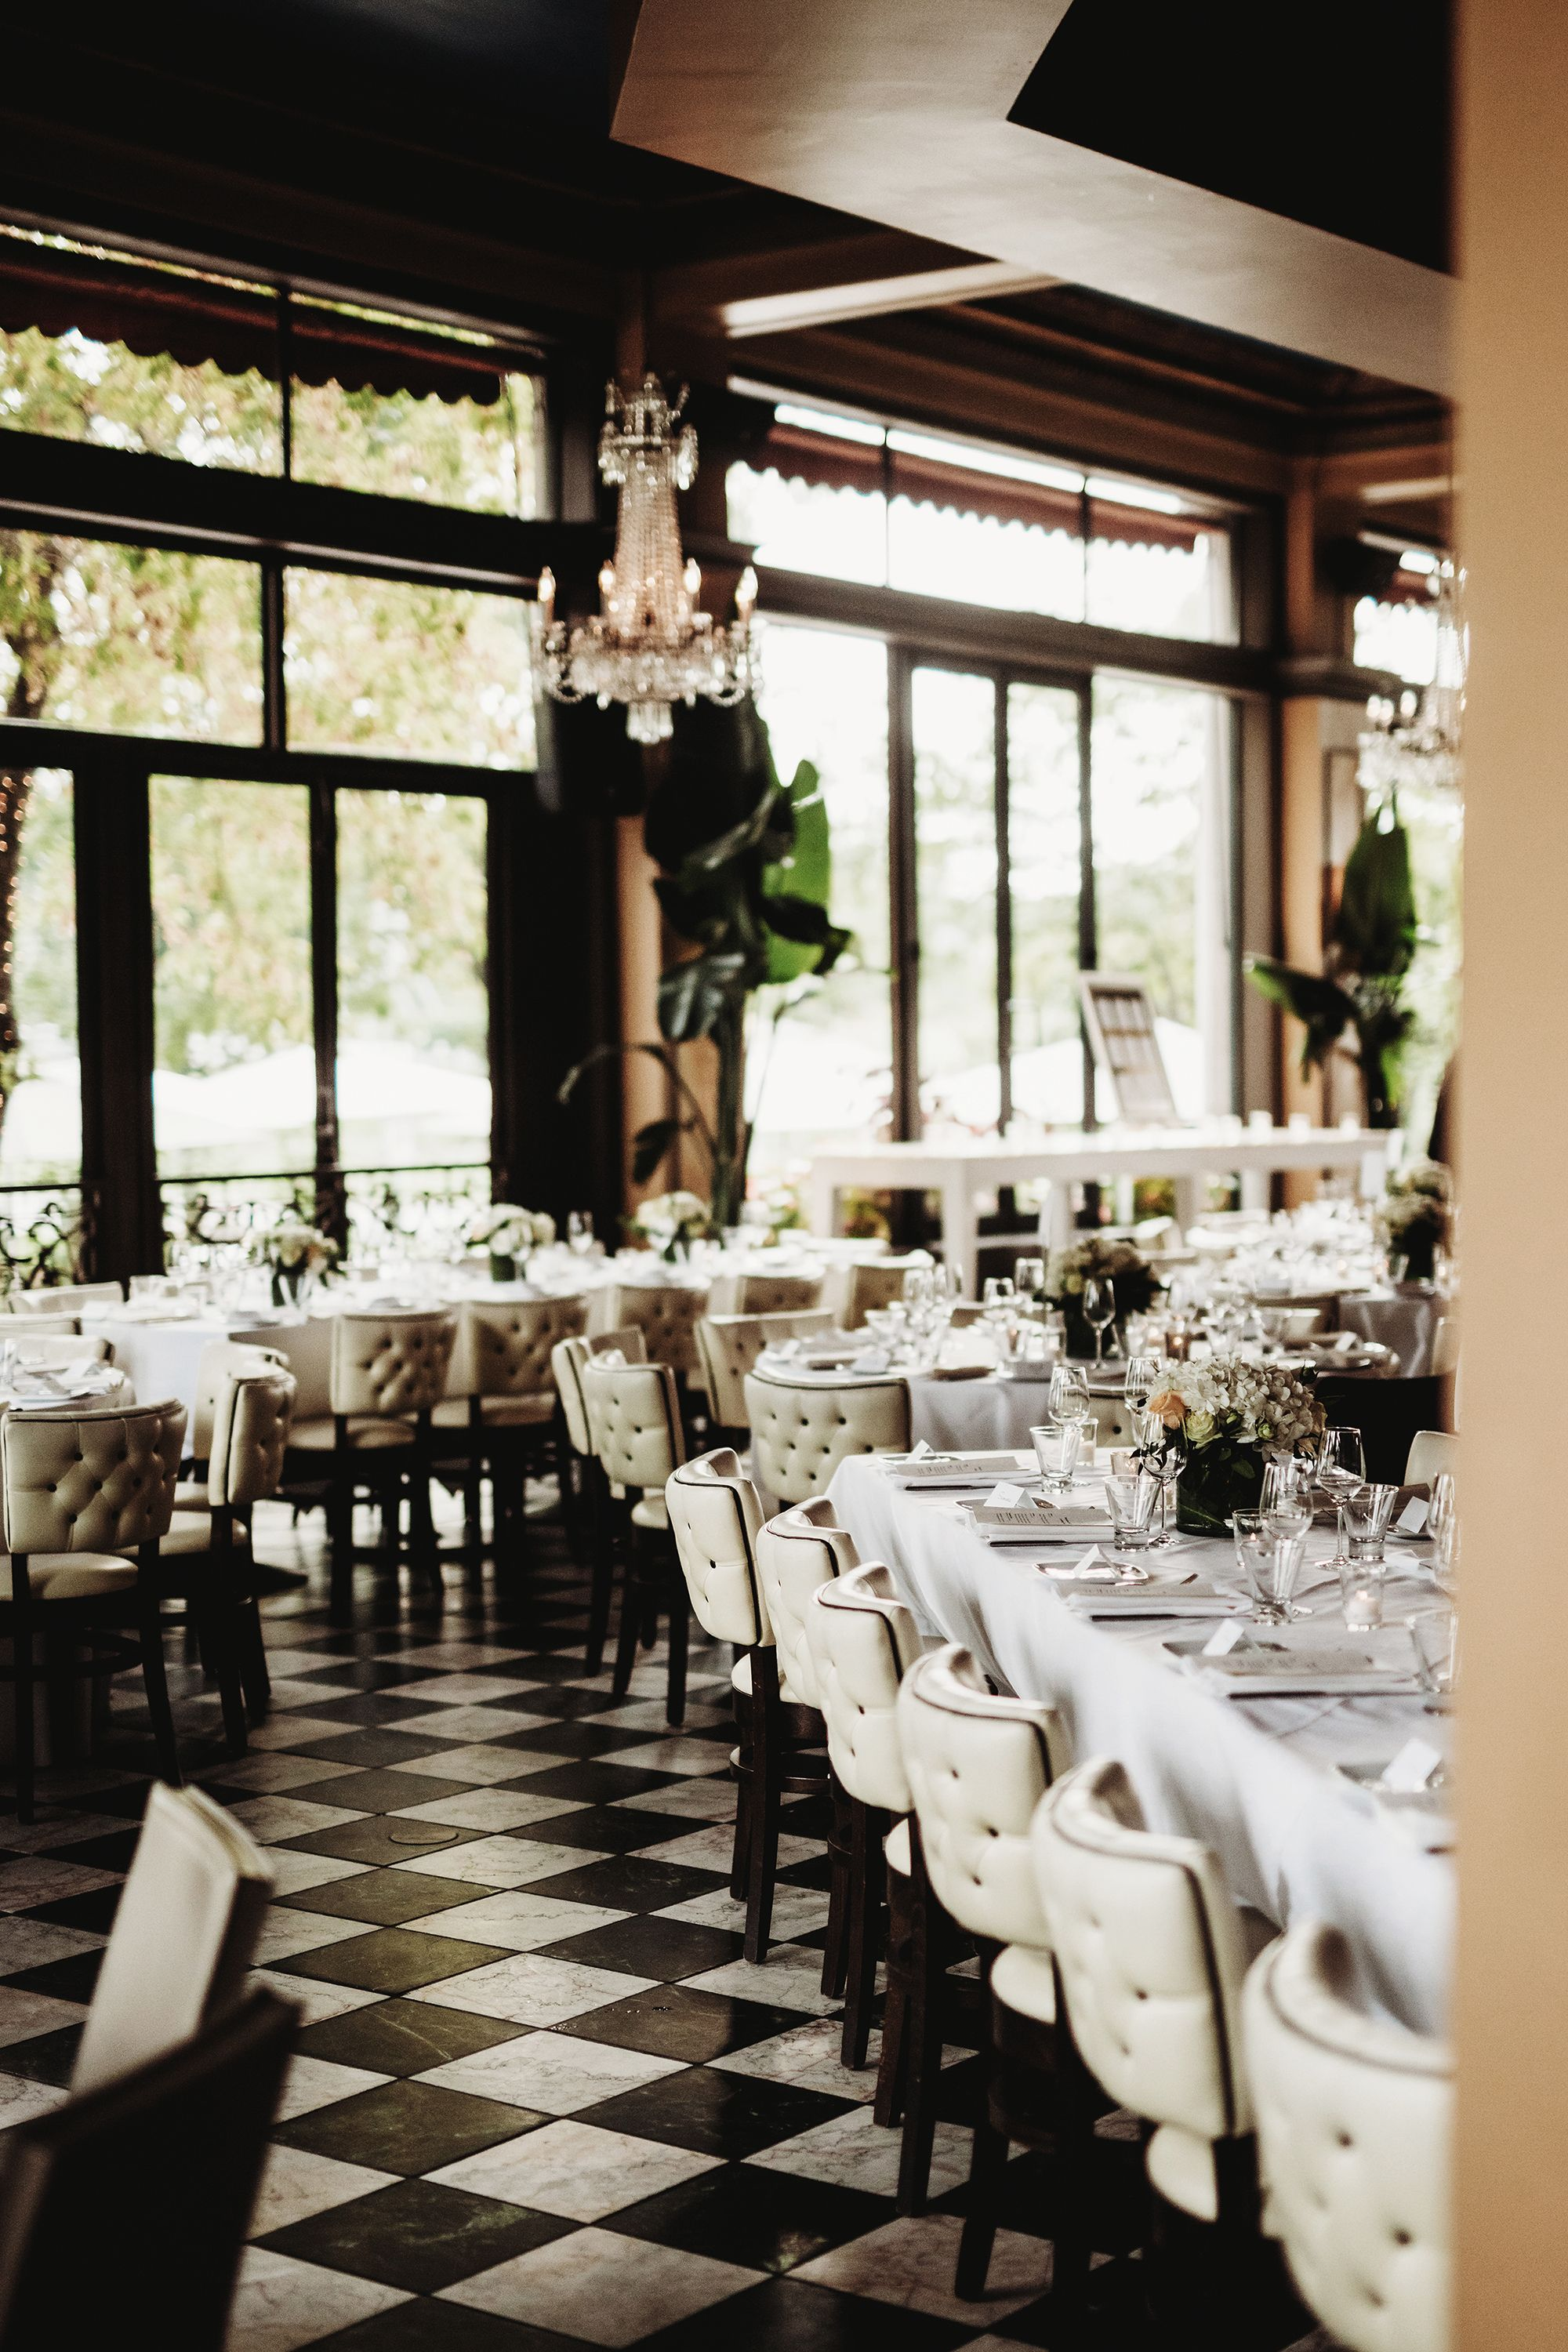 Our Favorite Restaurant Wedding Décor Ideas White